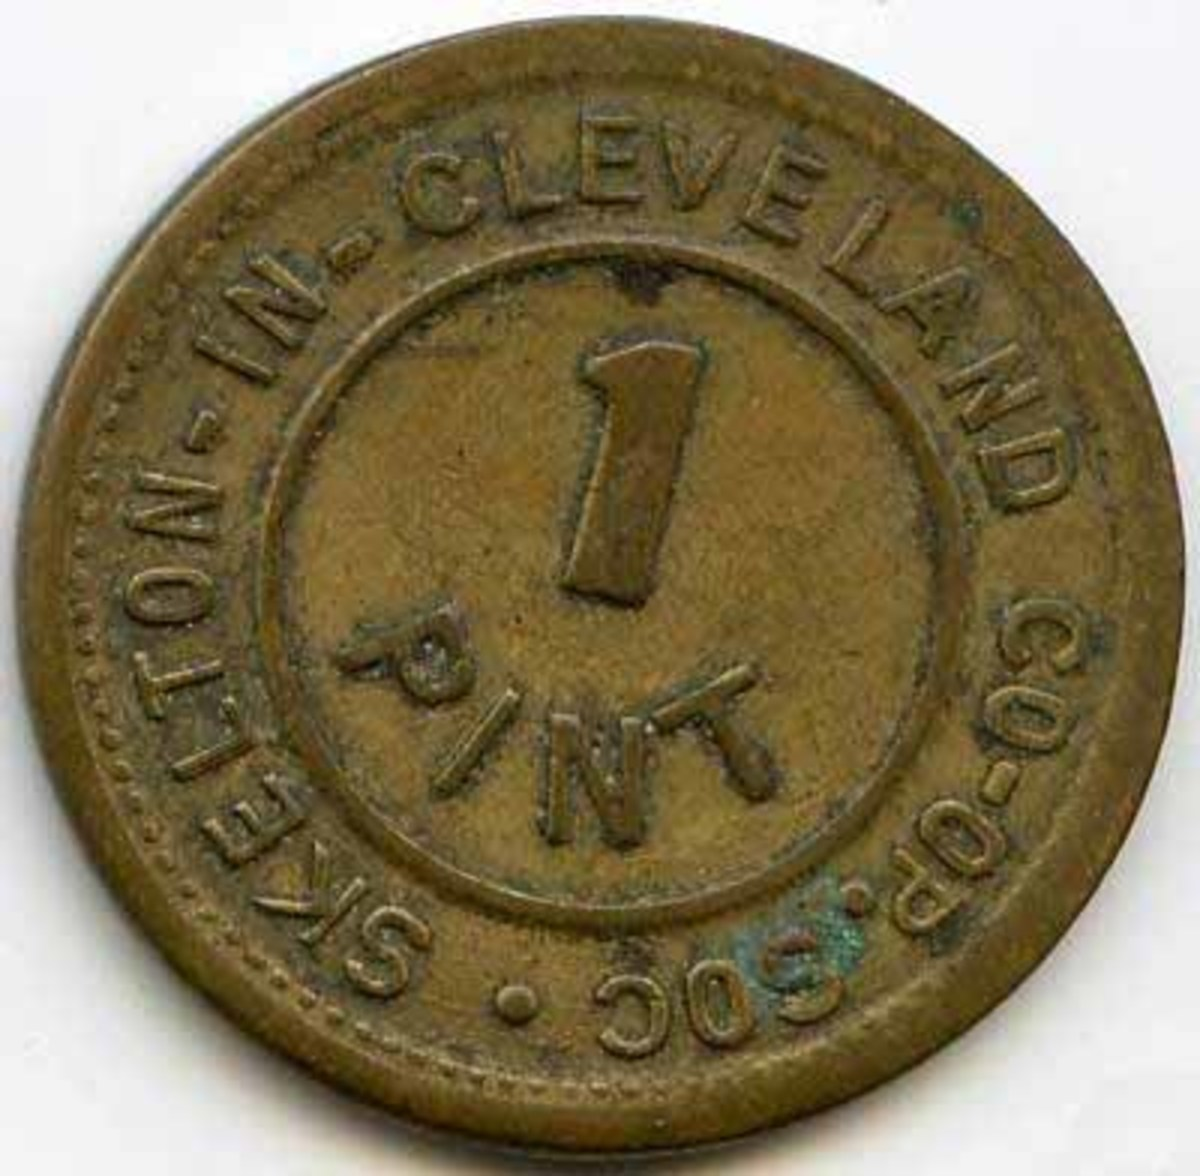 Skelton Co-operative Society milk token - a boon for malnourished youngsters in industrial communities